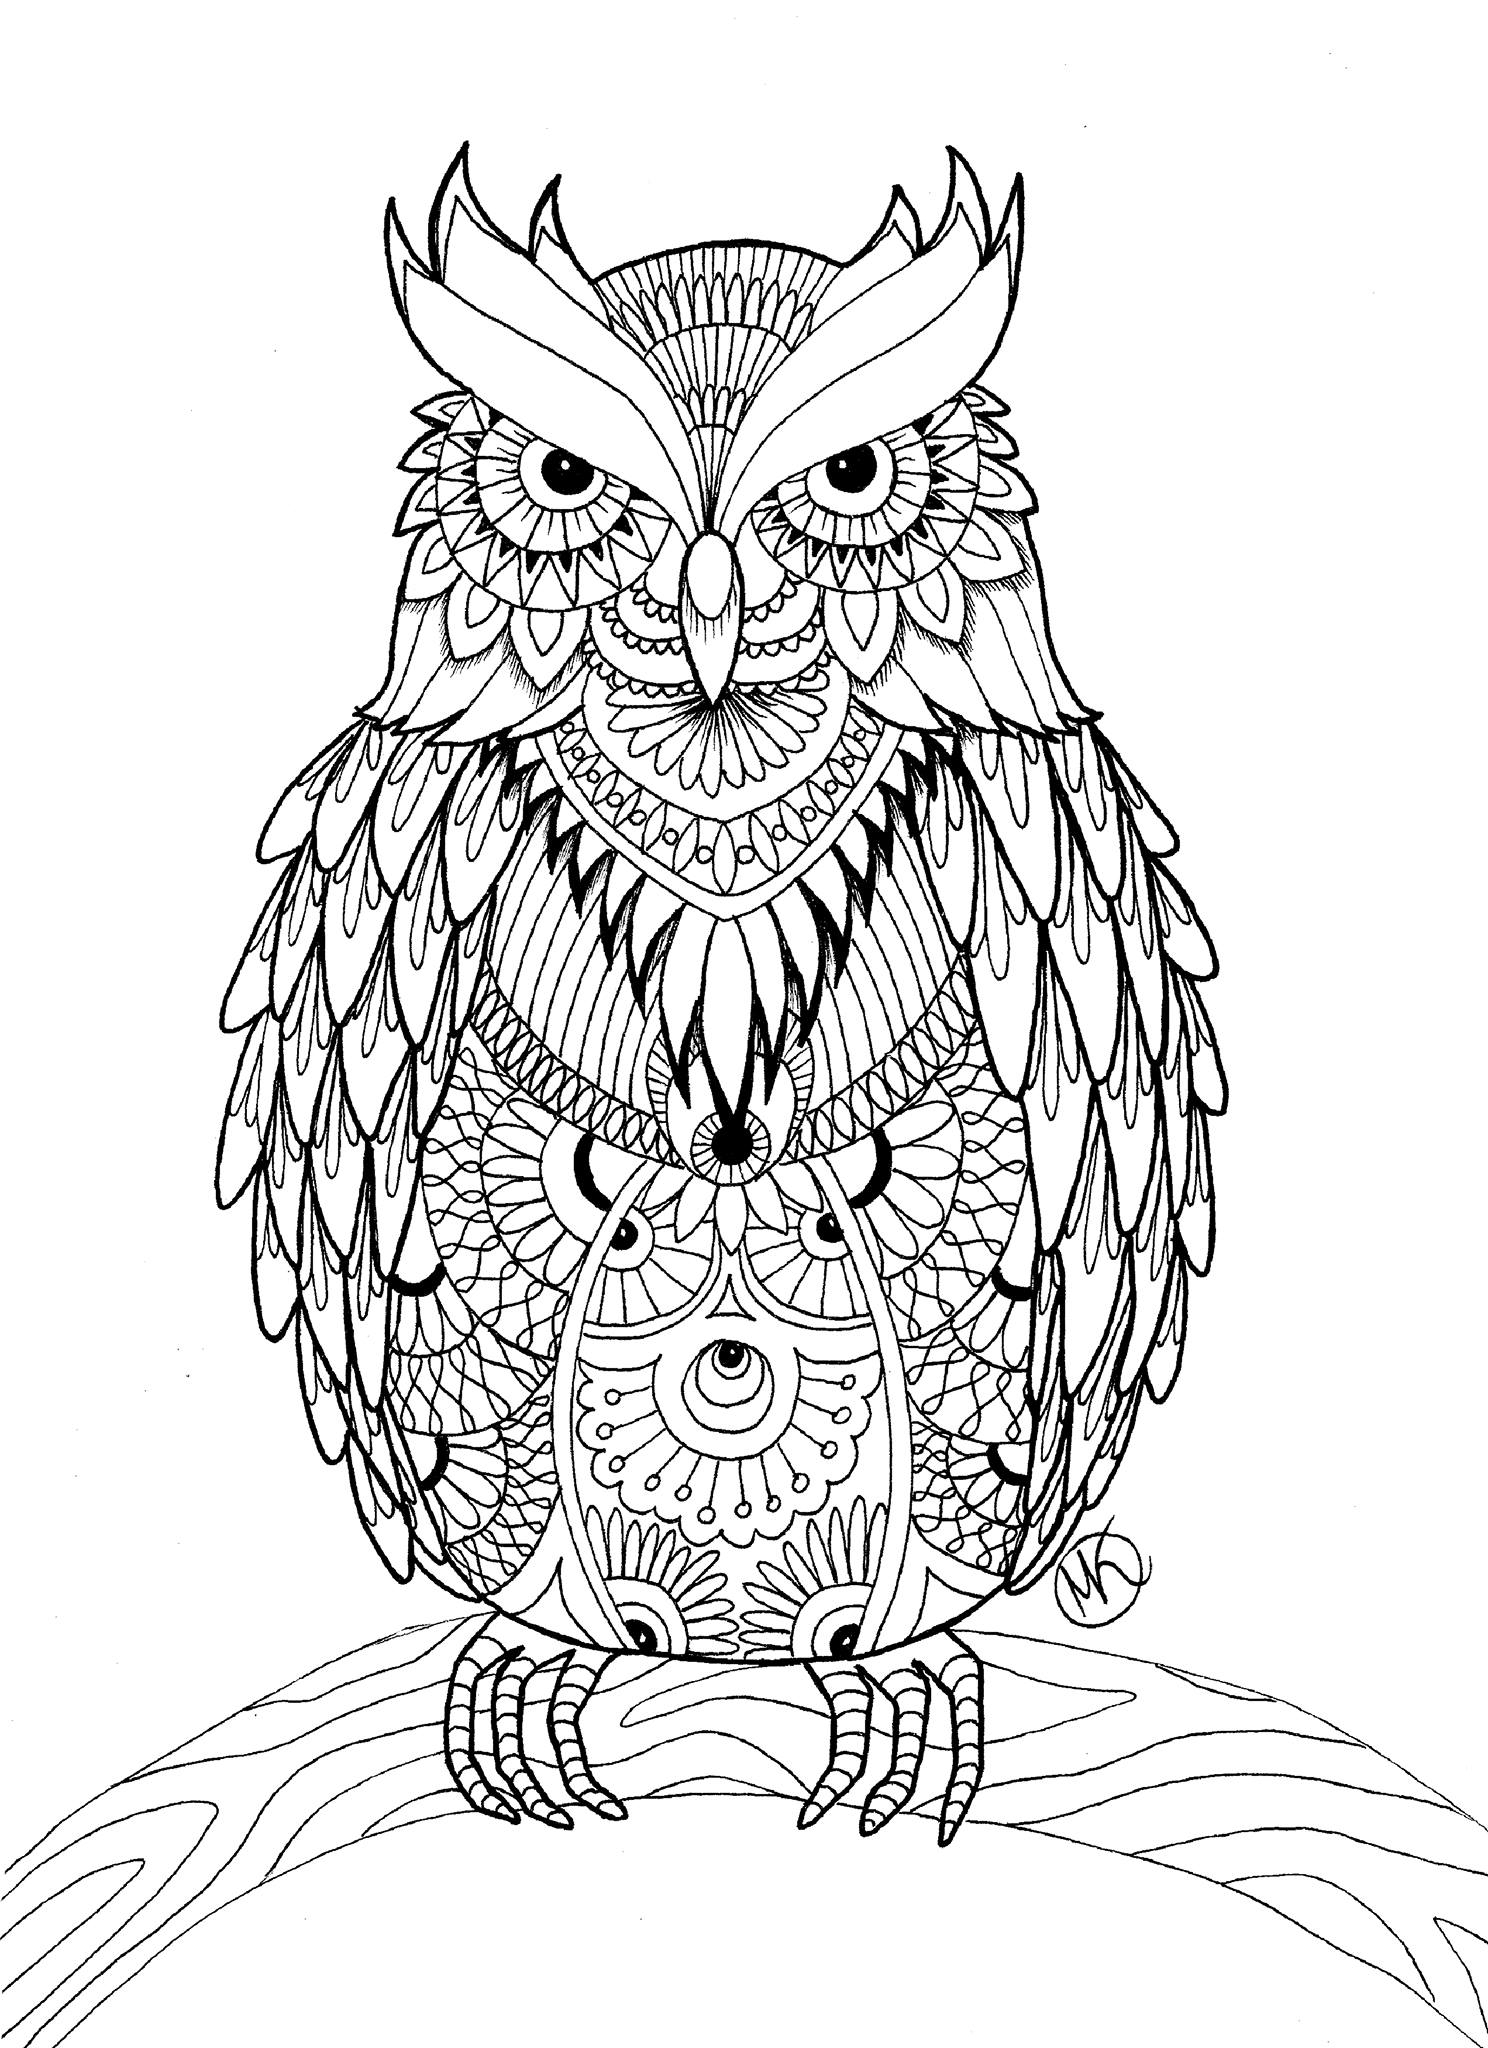 free printable animal colouring pages cartoon animal coloring pages to download and print for free animal pages colouring printable free